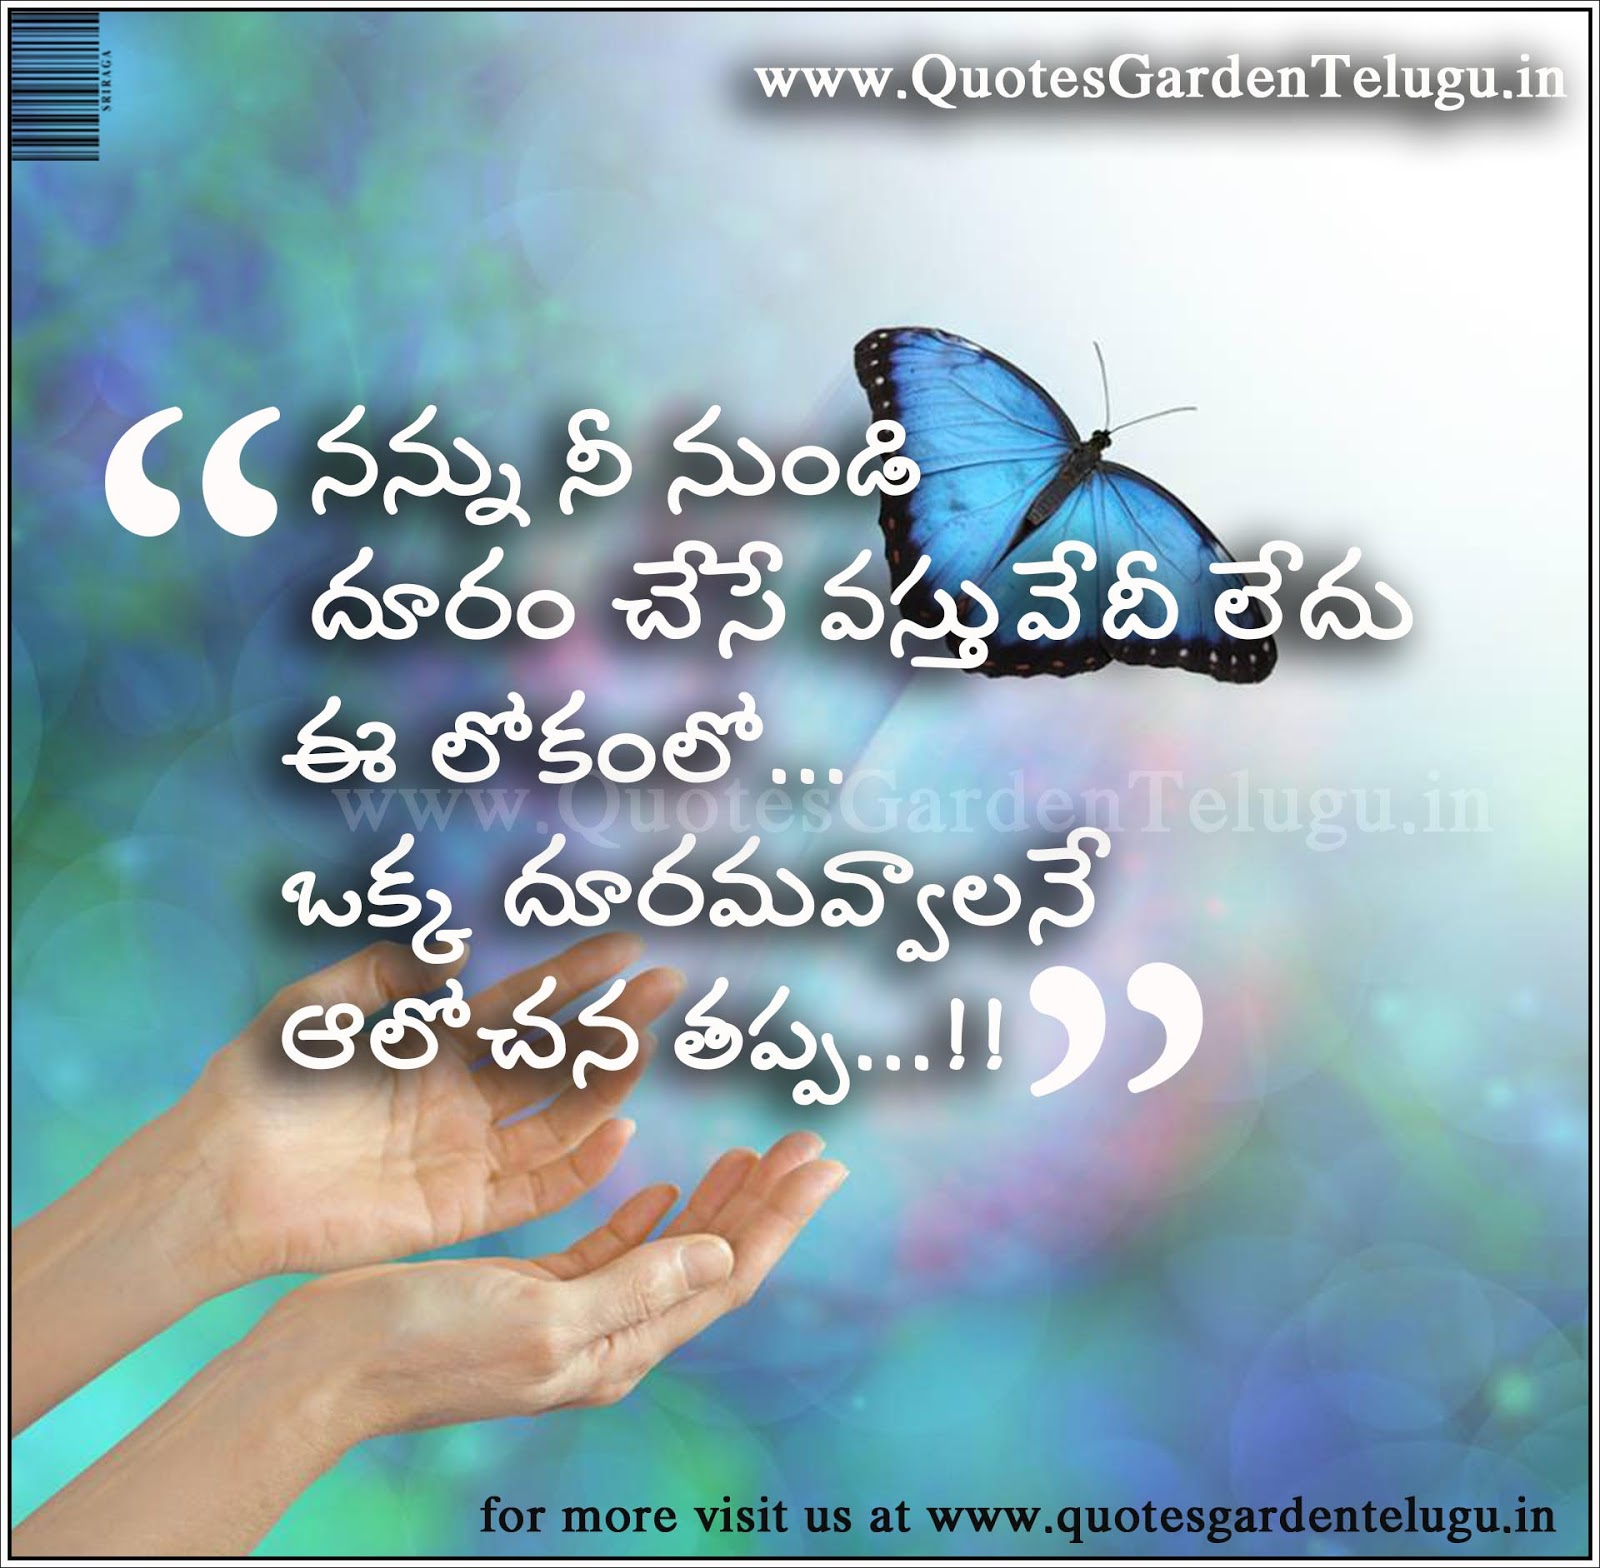 Telugu Love Quotes Mesmerizing Best Telugu Heart Touching Love Quotes With Hd Images 652  Quotes